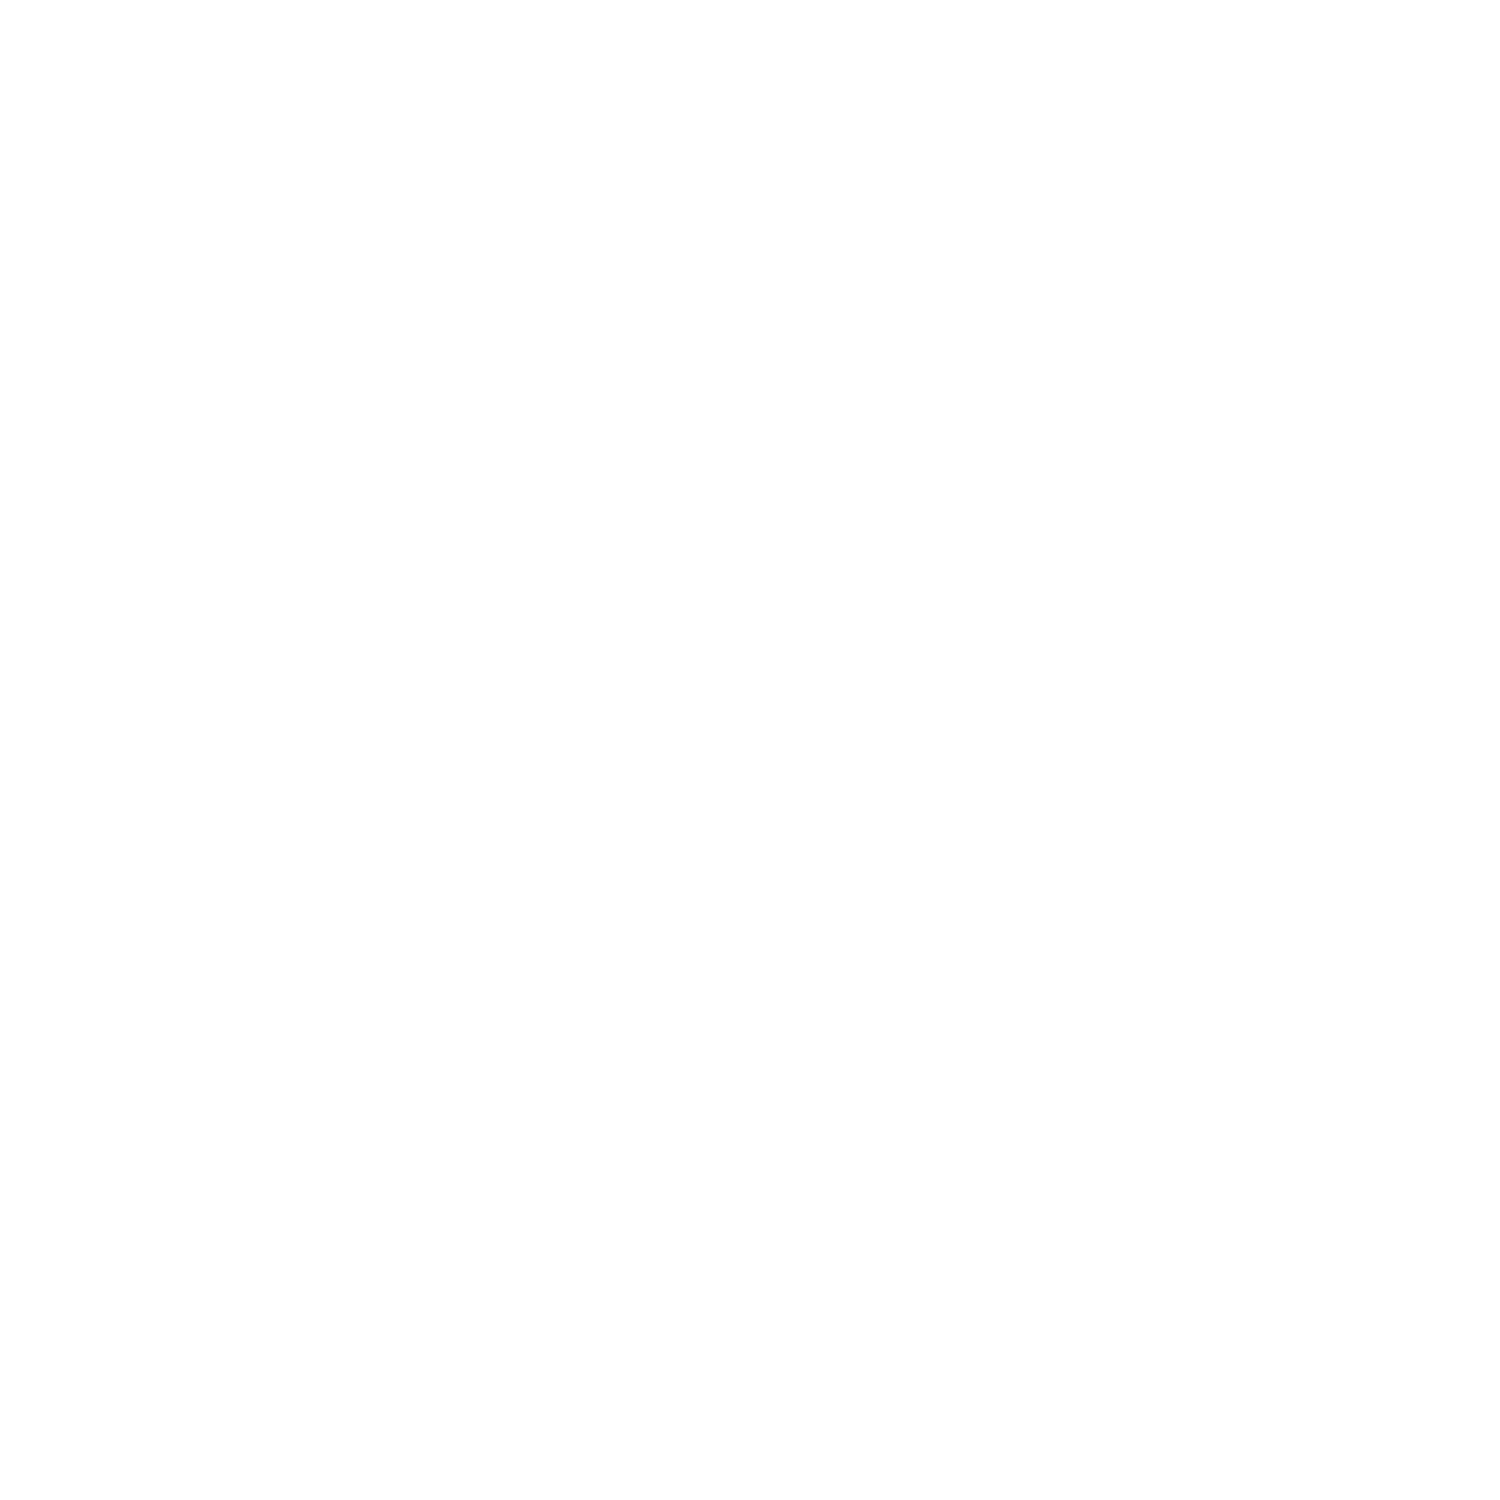 Experience The Wonder of Tim and Amanda Cowles